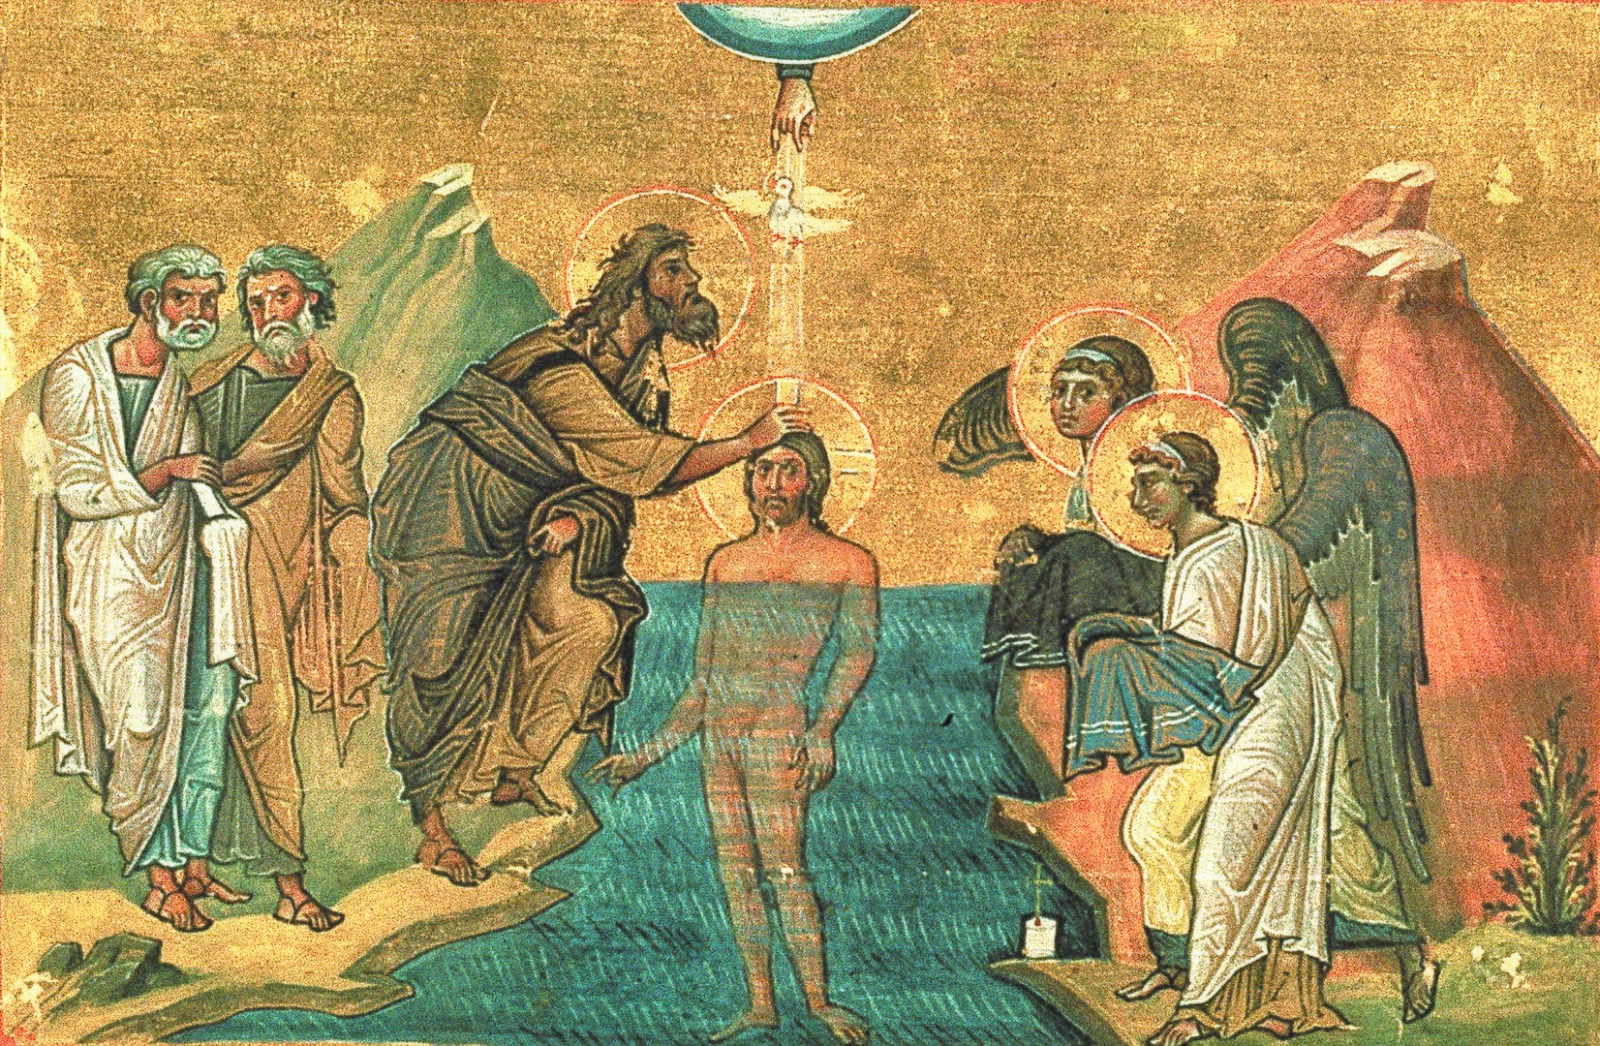 The Baptism of Jesus by John the Baptist - Menologe of Basil II (late 10th century)